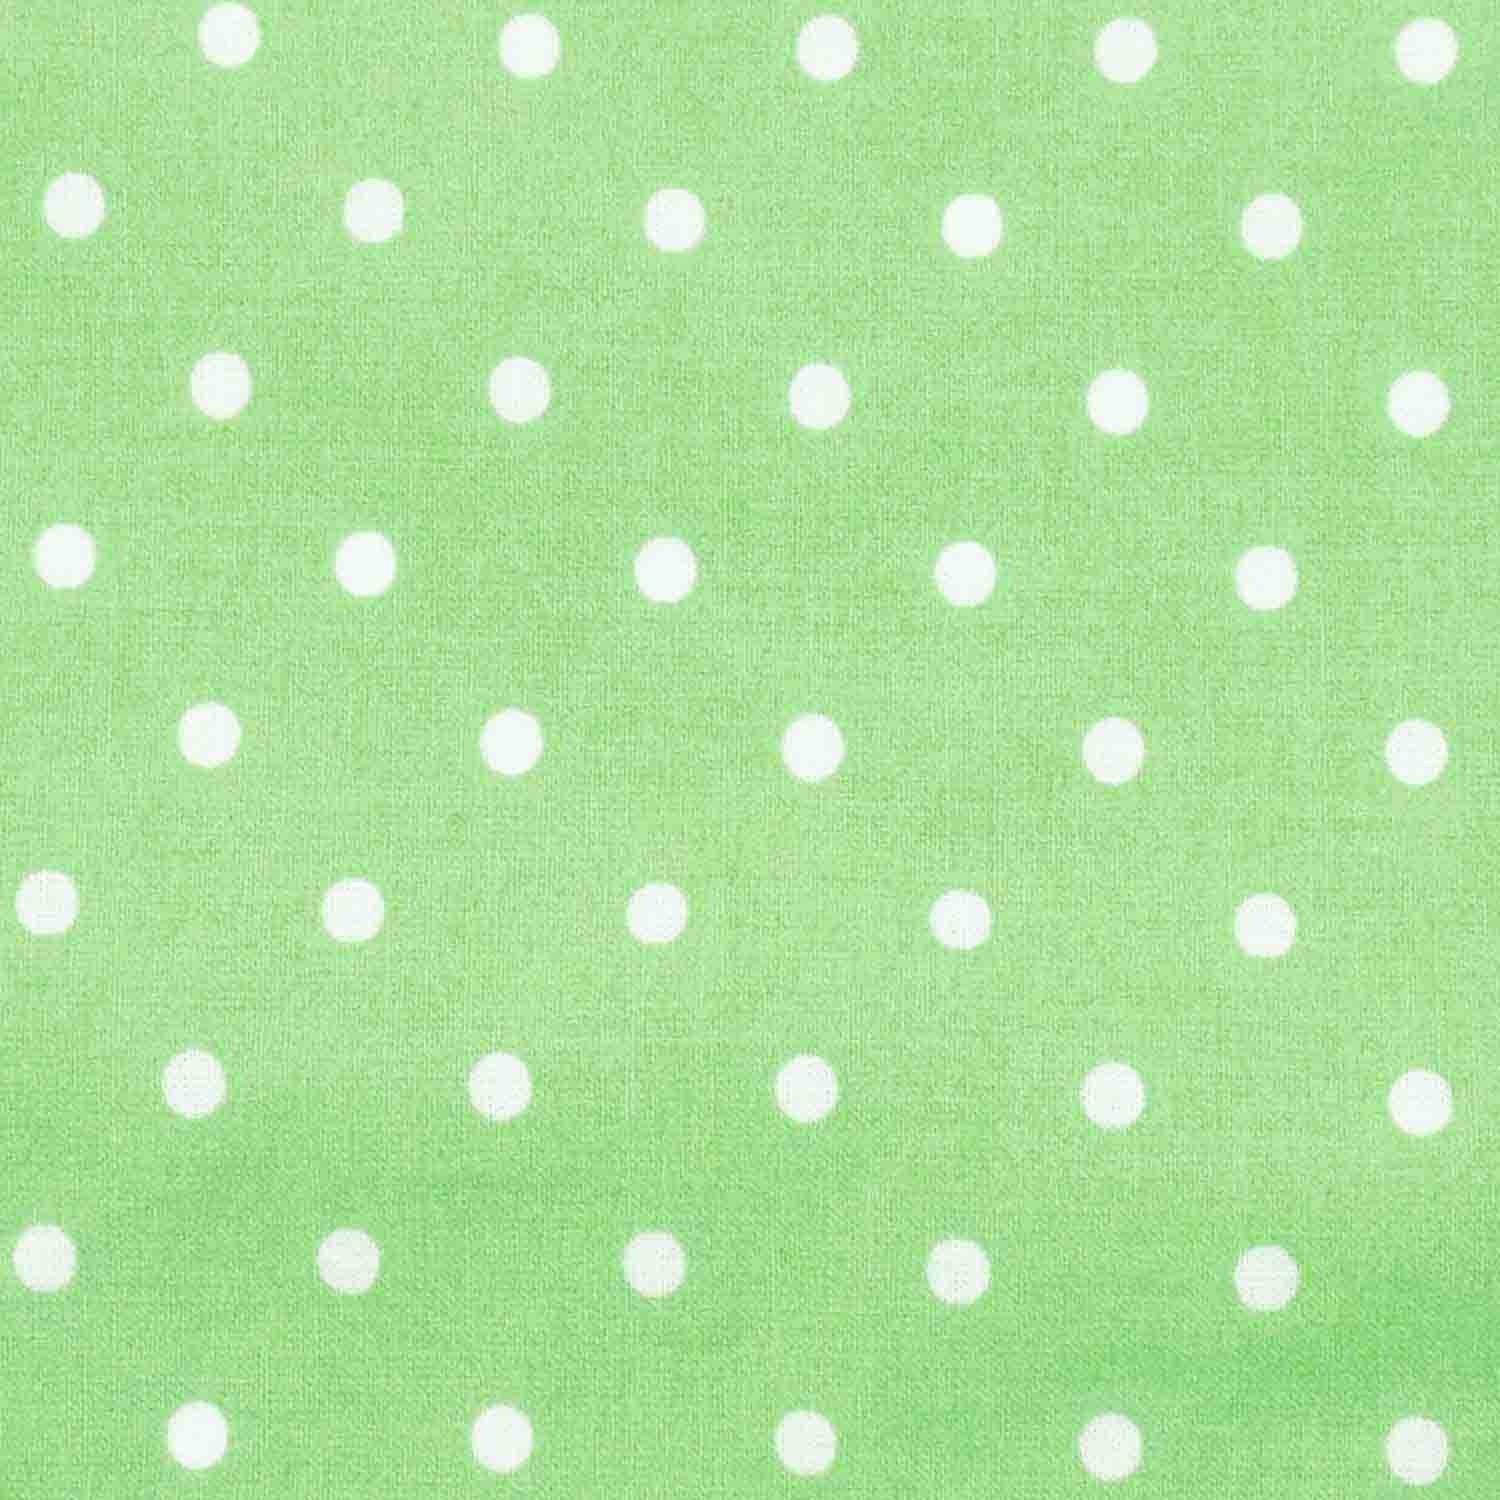 Light Green with White Polka Dots Basket Liner - Beach ...